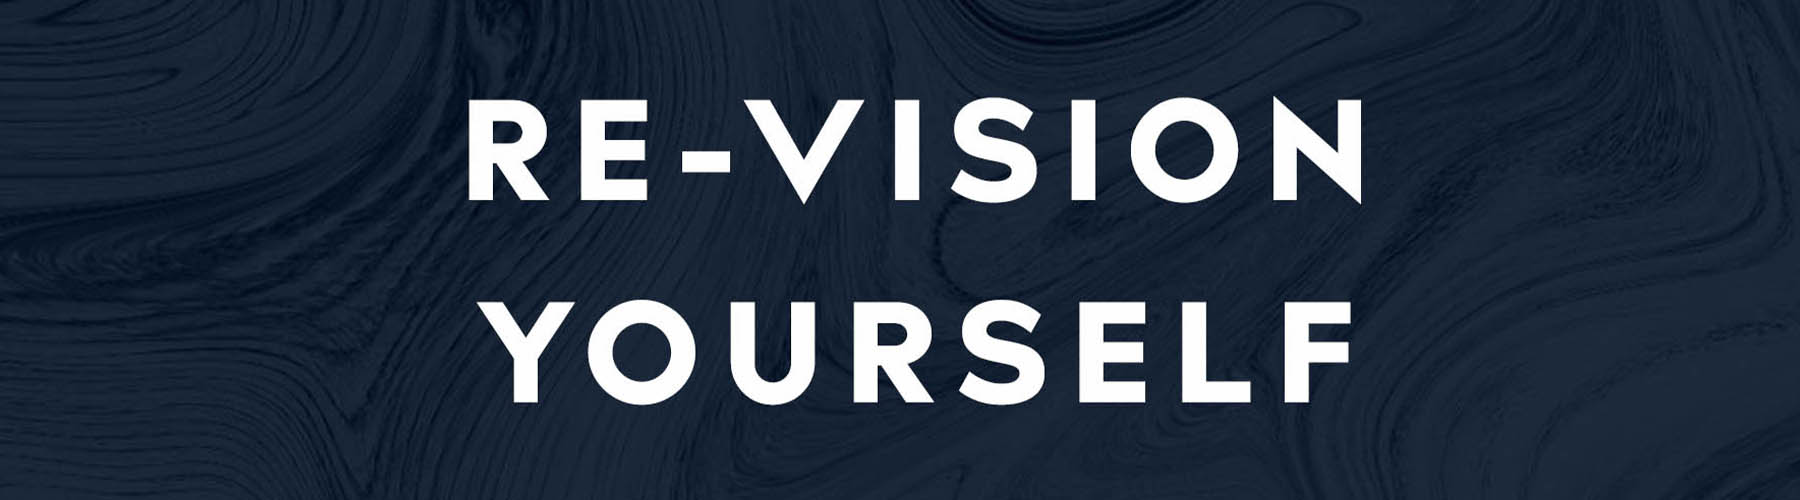 Re-Vision Yourself